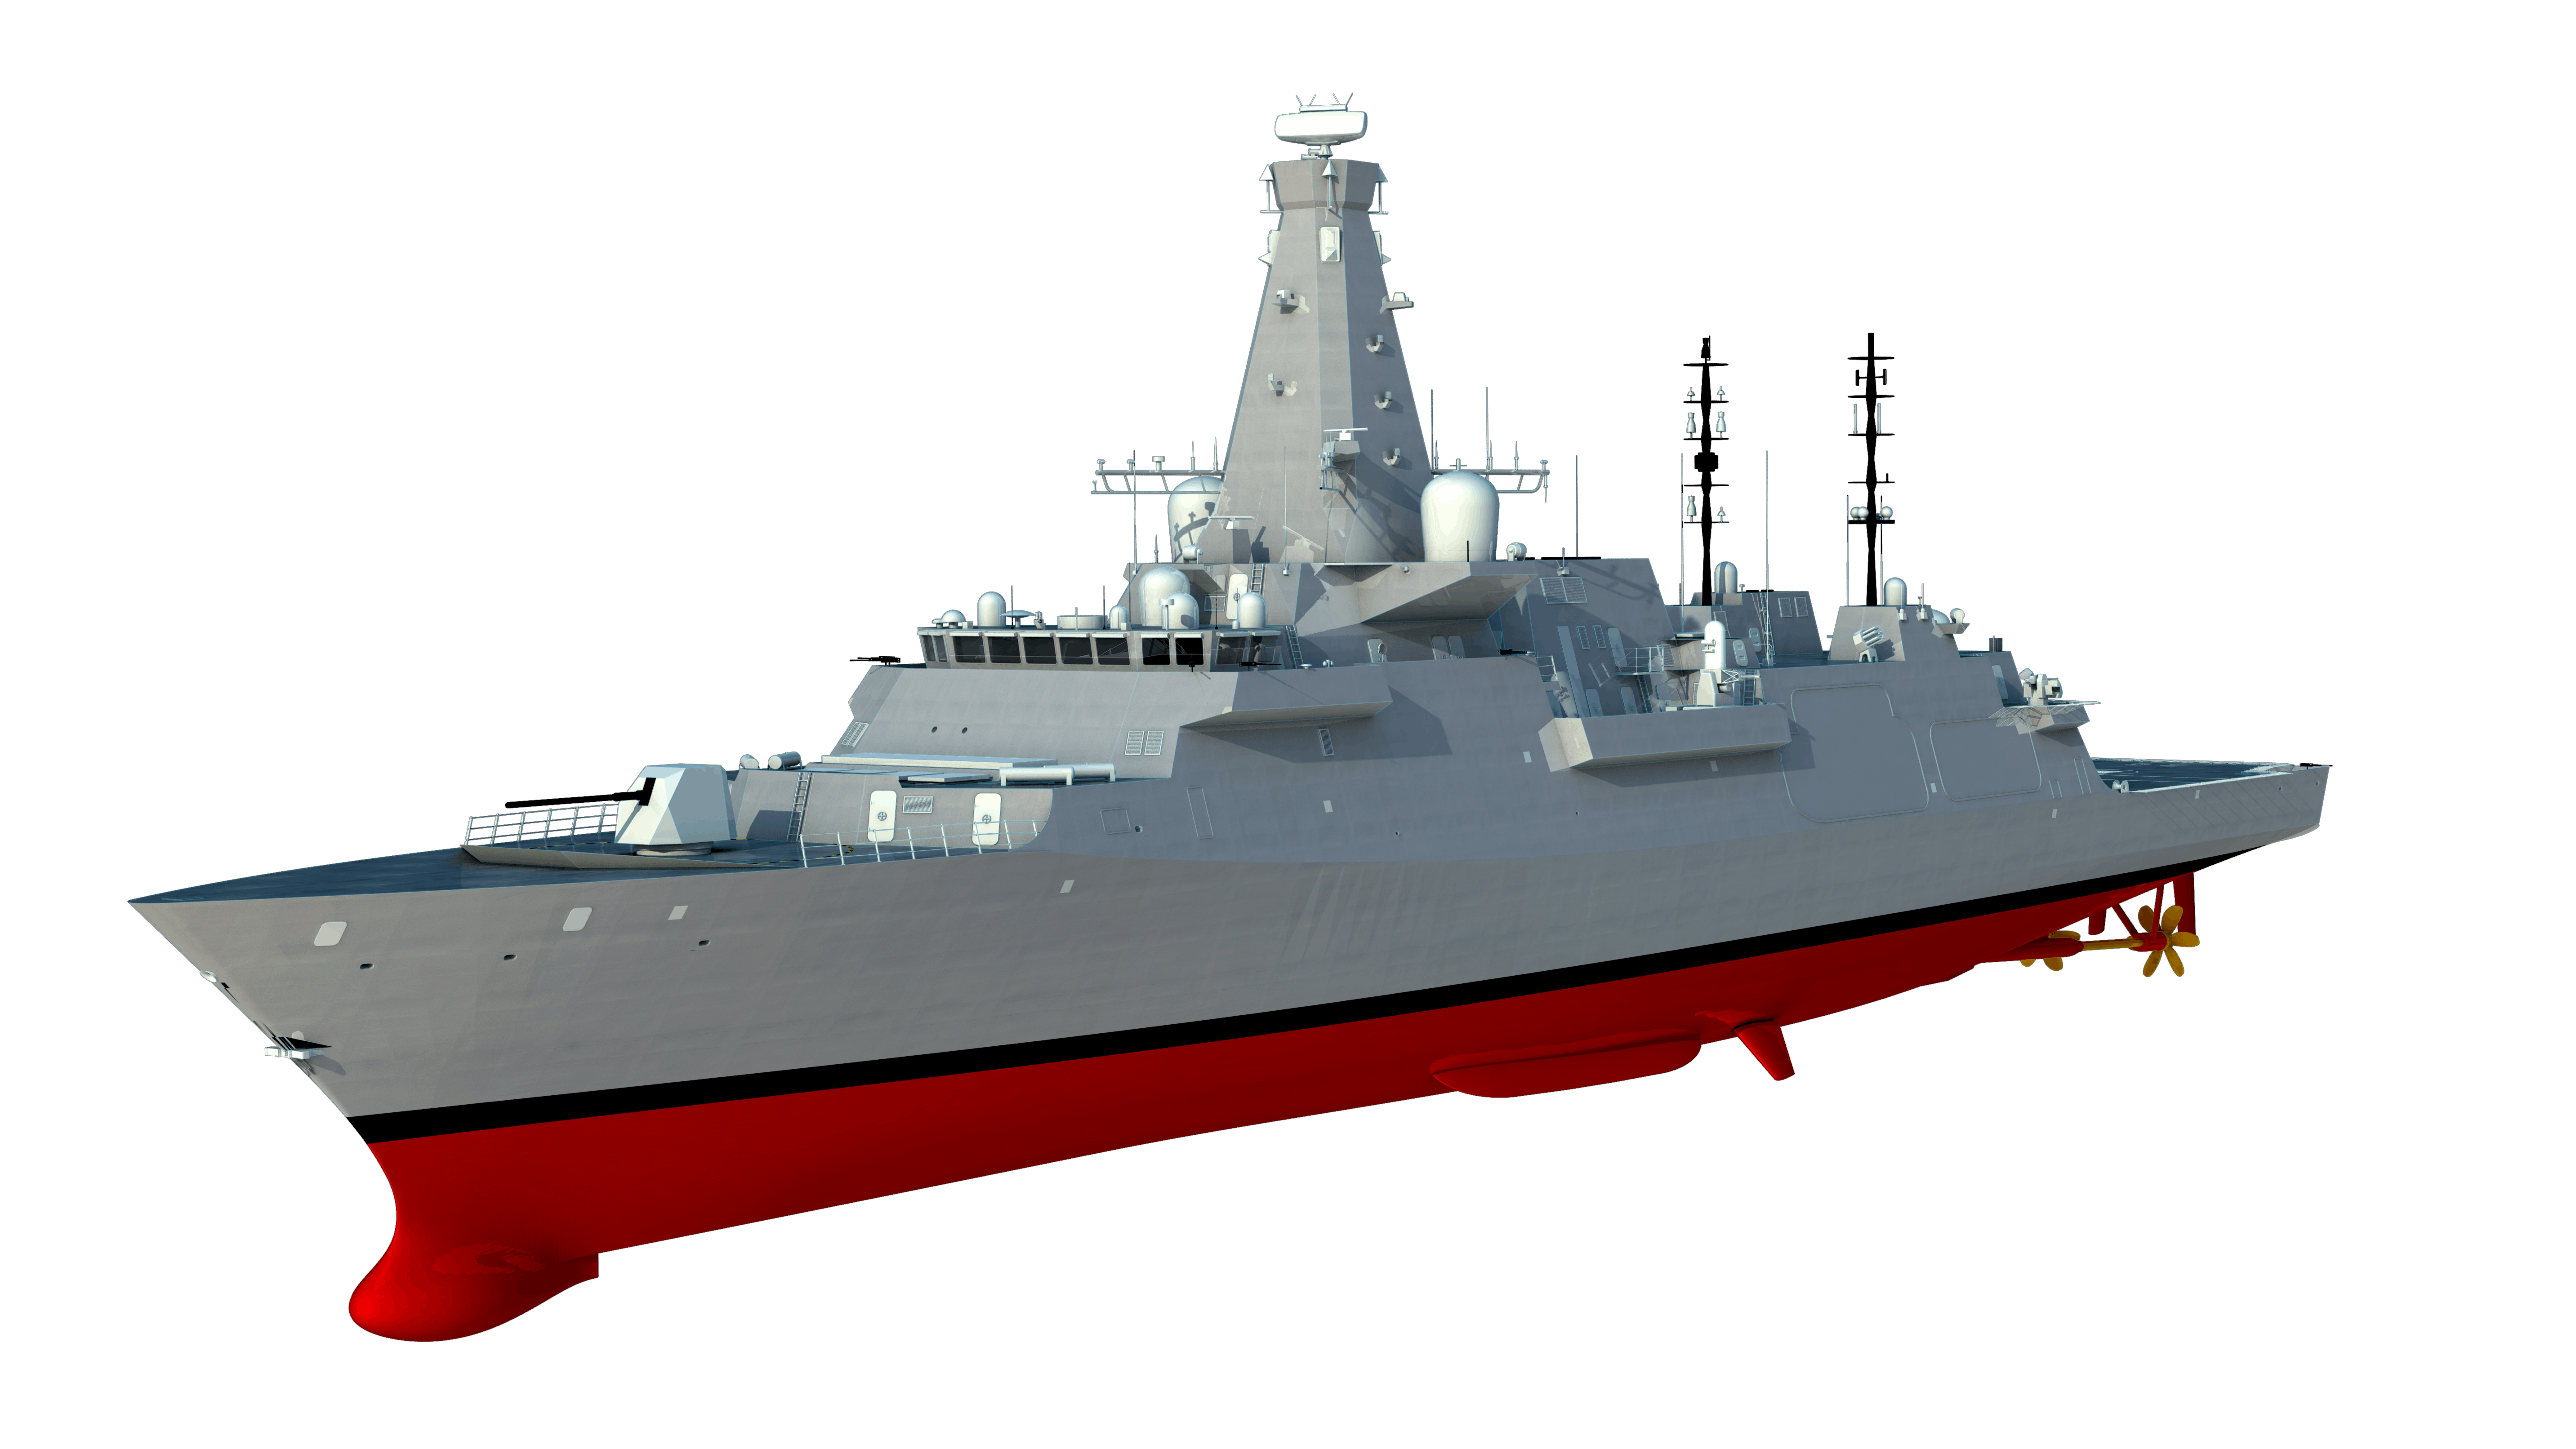 The Type 26 Frigate could be the most capable Royal Navy